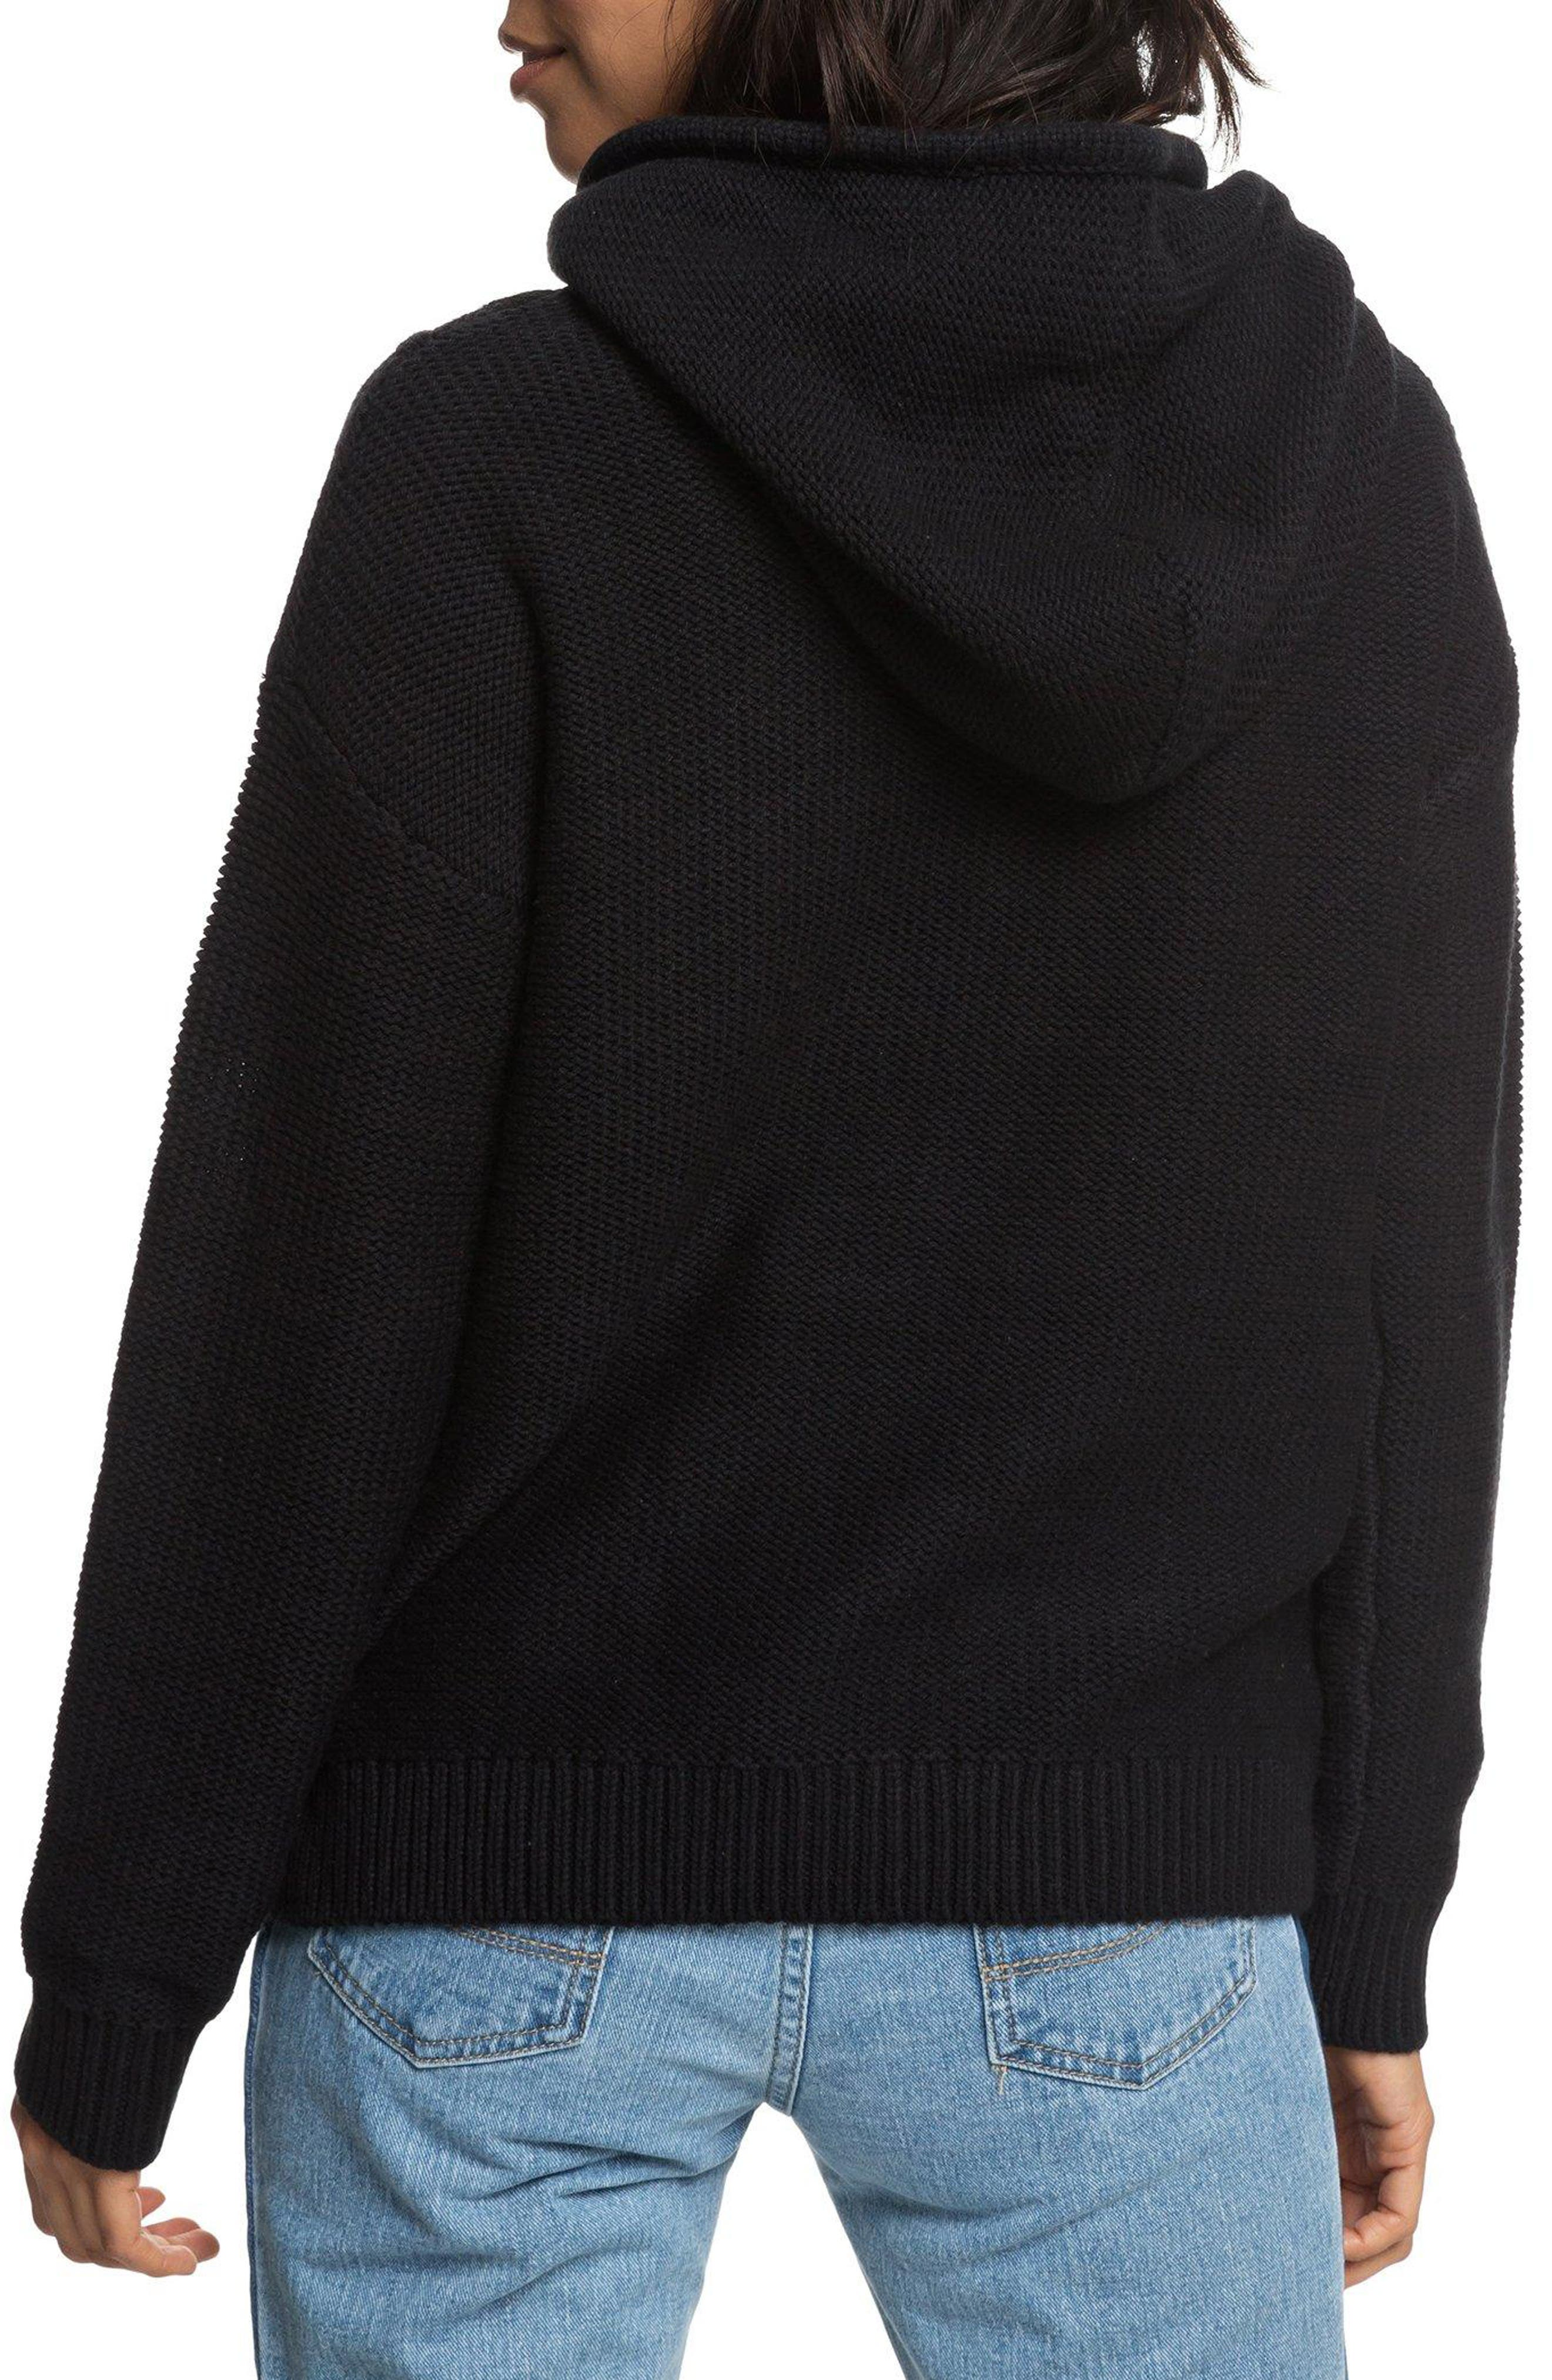 Off to Dinner Hooded Sweater,                             Alternate thumbnail 2, color,                             001